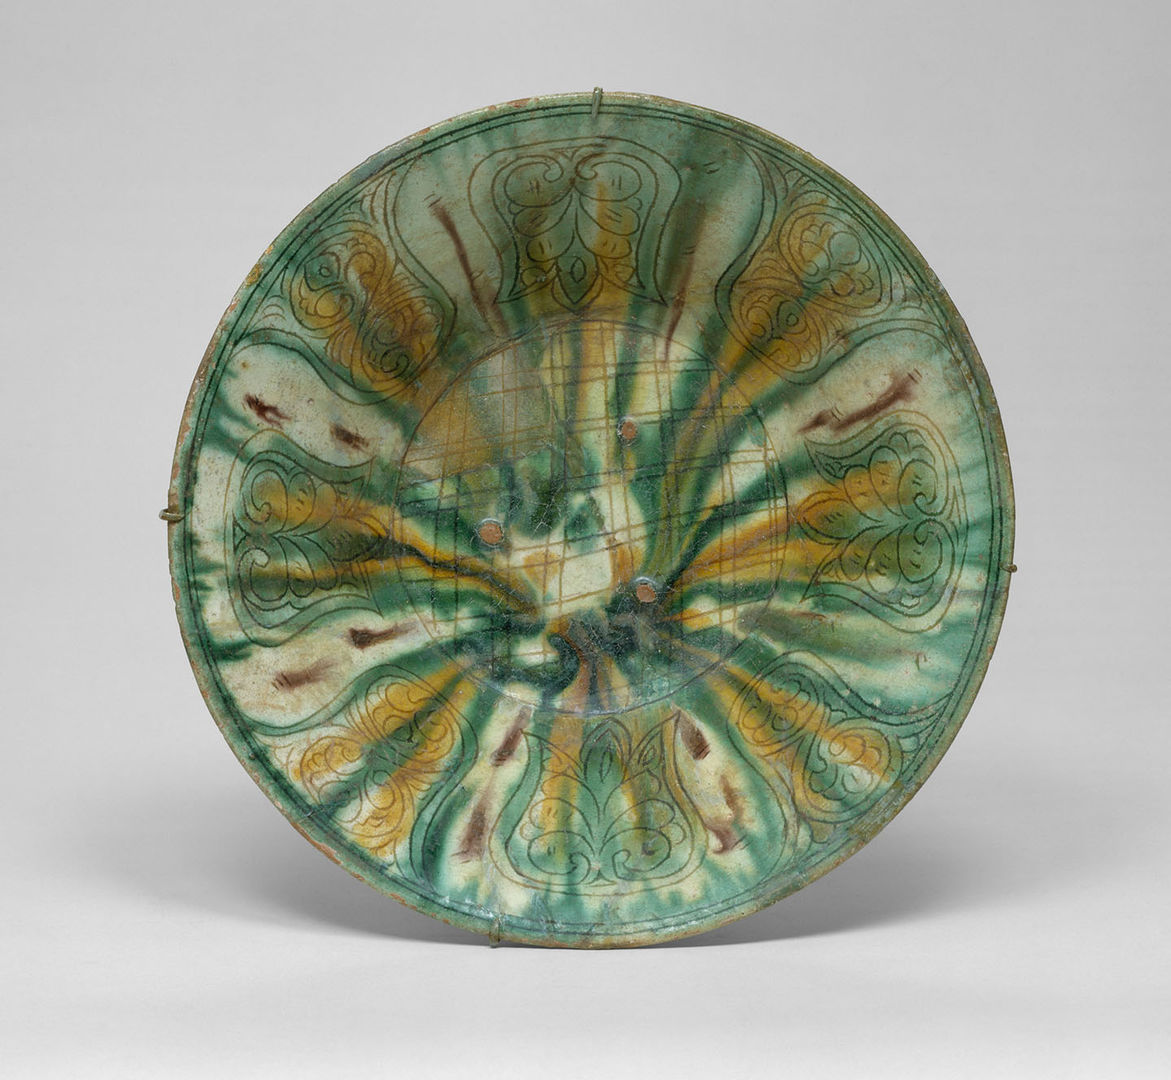 A ceramic bowl with a white ground and decorated with green, yellow, and red dripping glaze